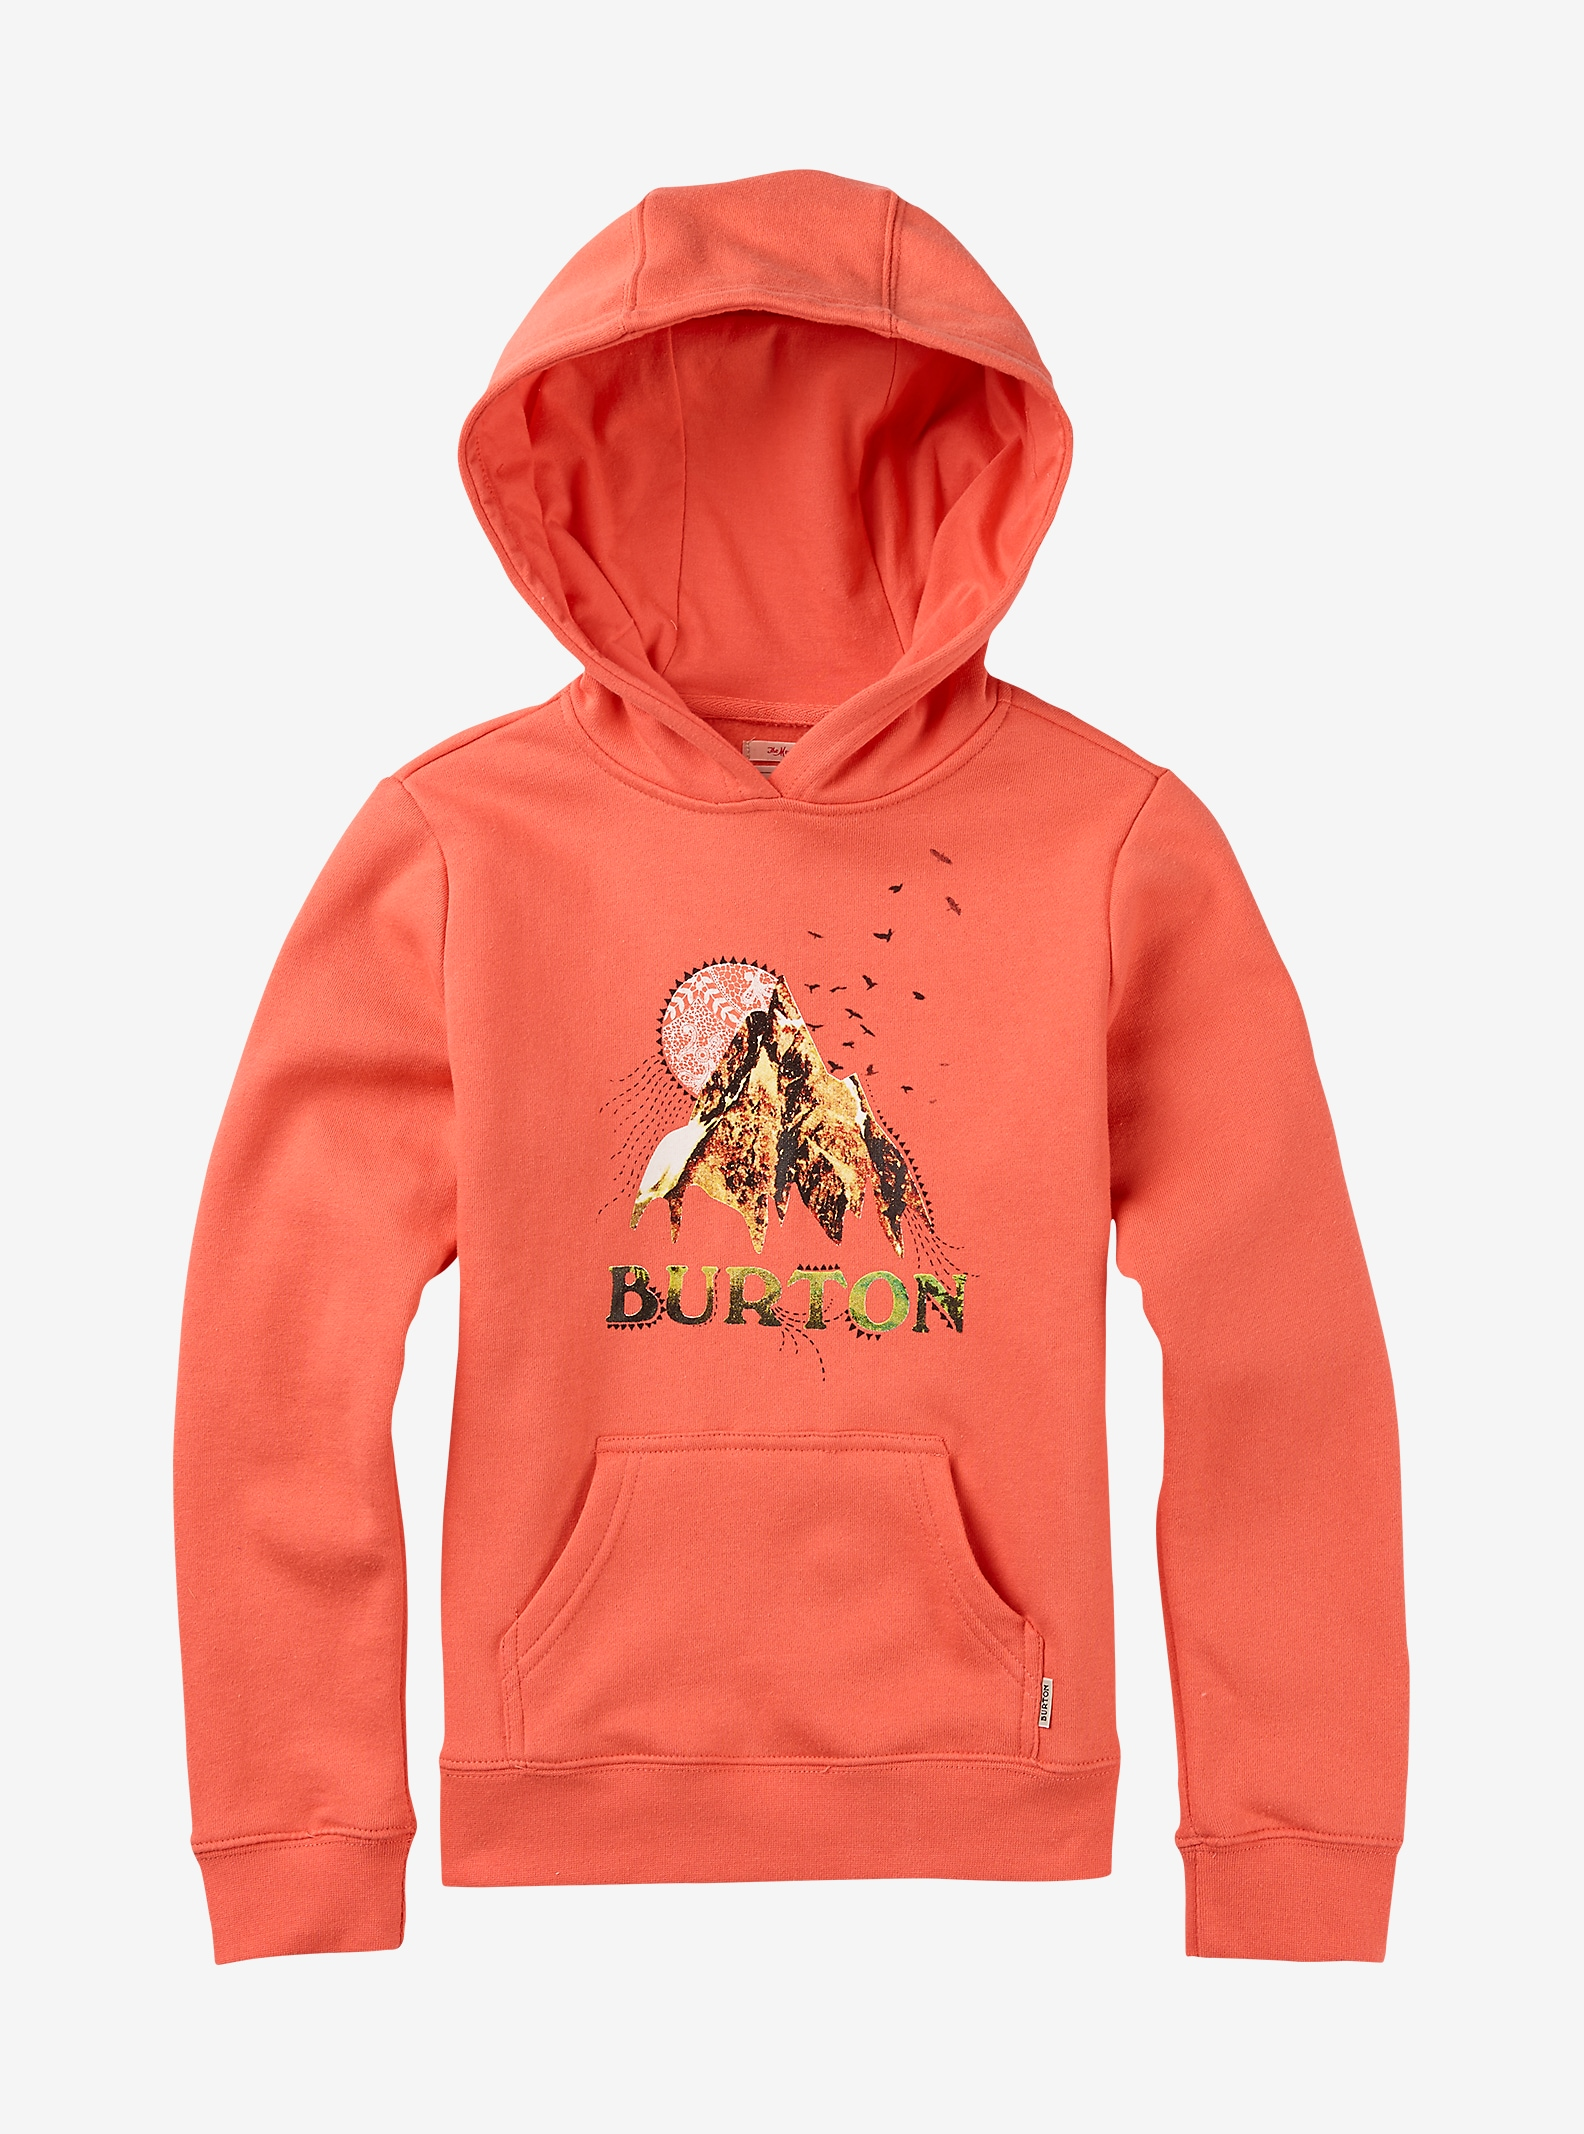 Burton Girls' Sage Pullover Hoodie shown in Fresh Salmon